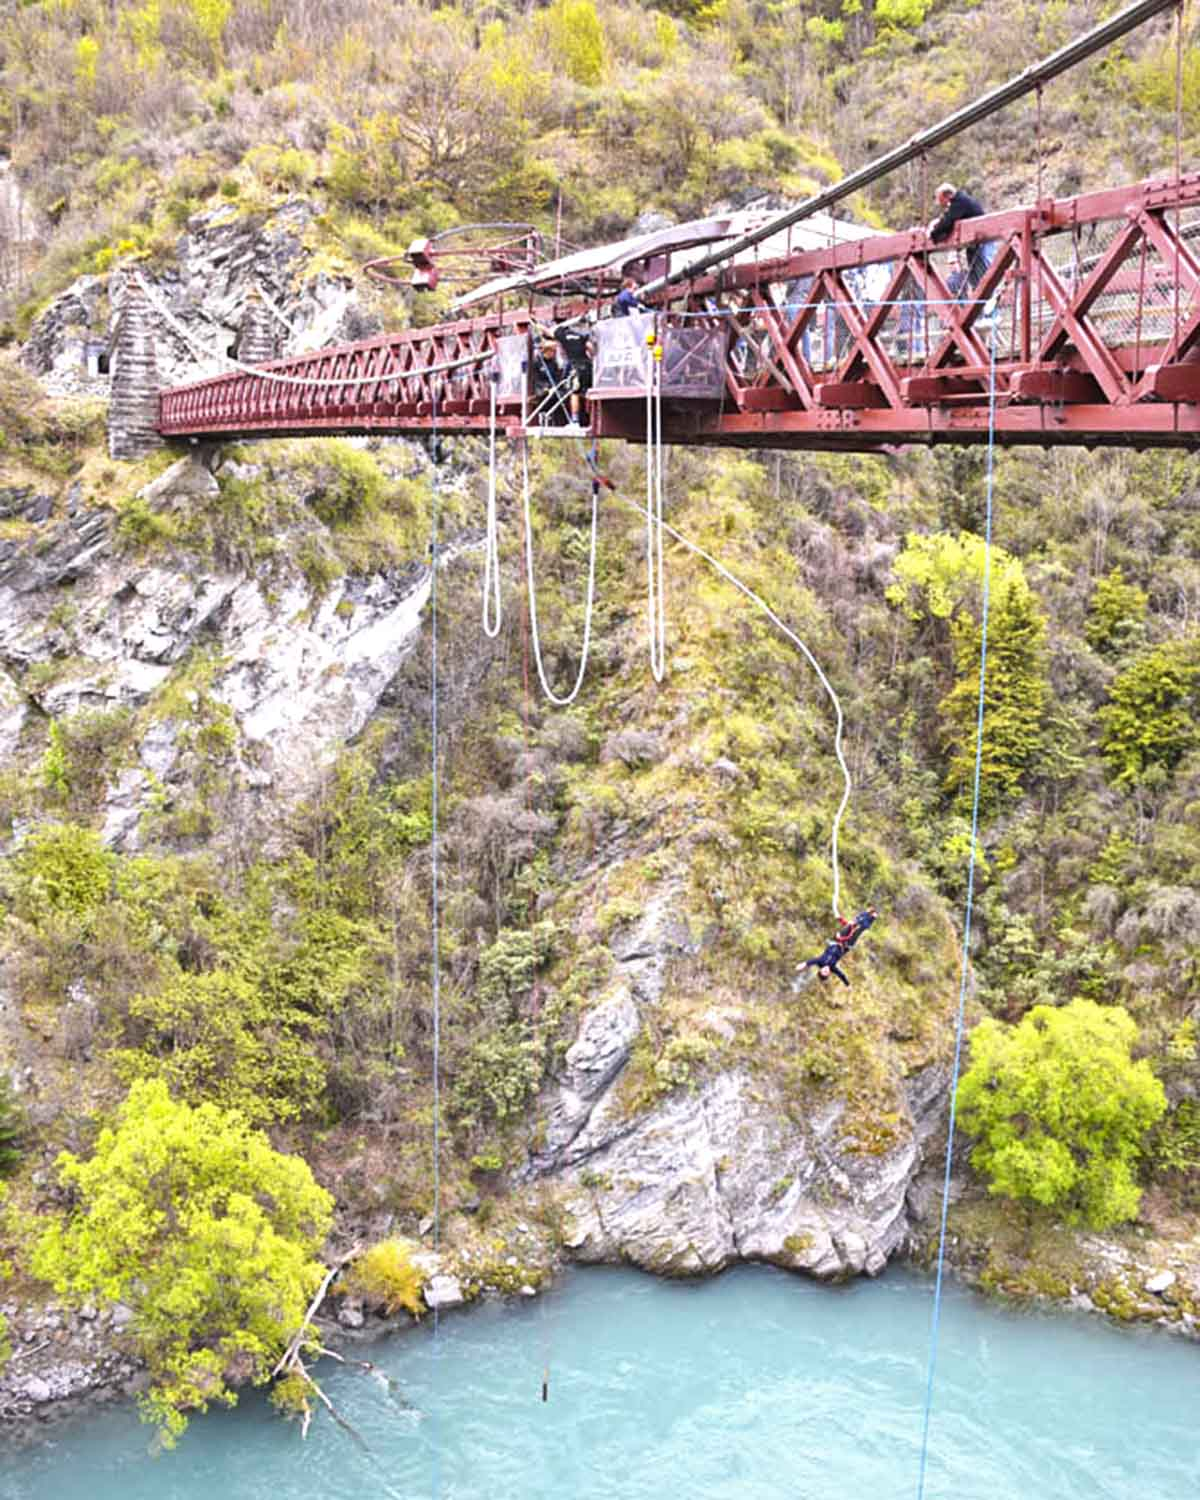 kawarau bridge bungy jump new zealand